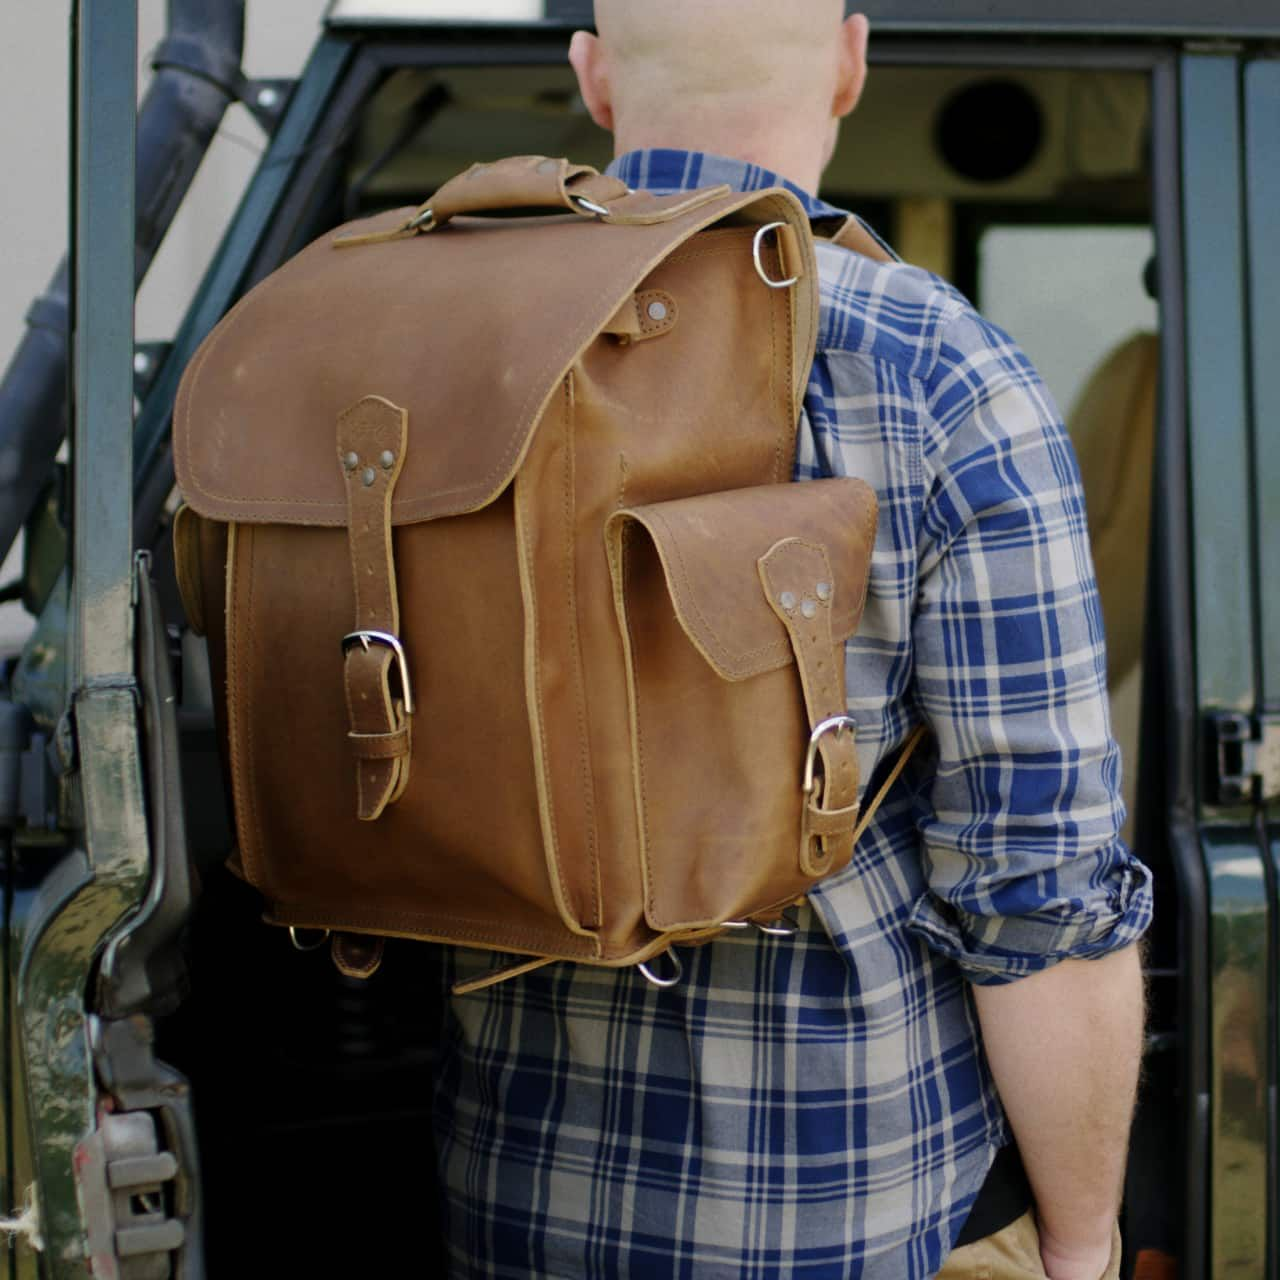 A man with a squared leather backpack in tobacco leather on his back wearing a shirt standing in front of a car